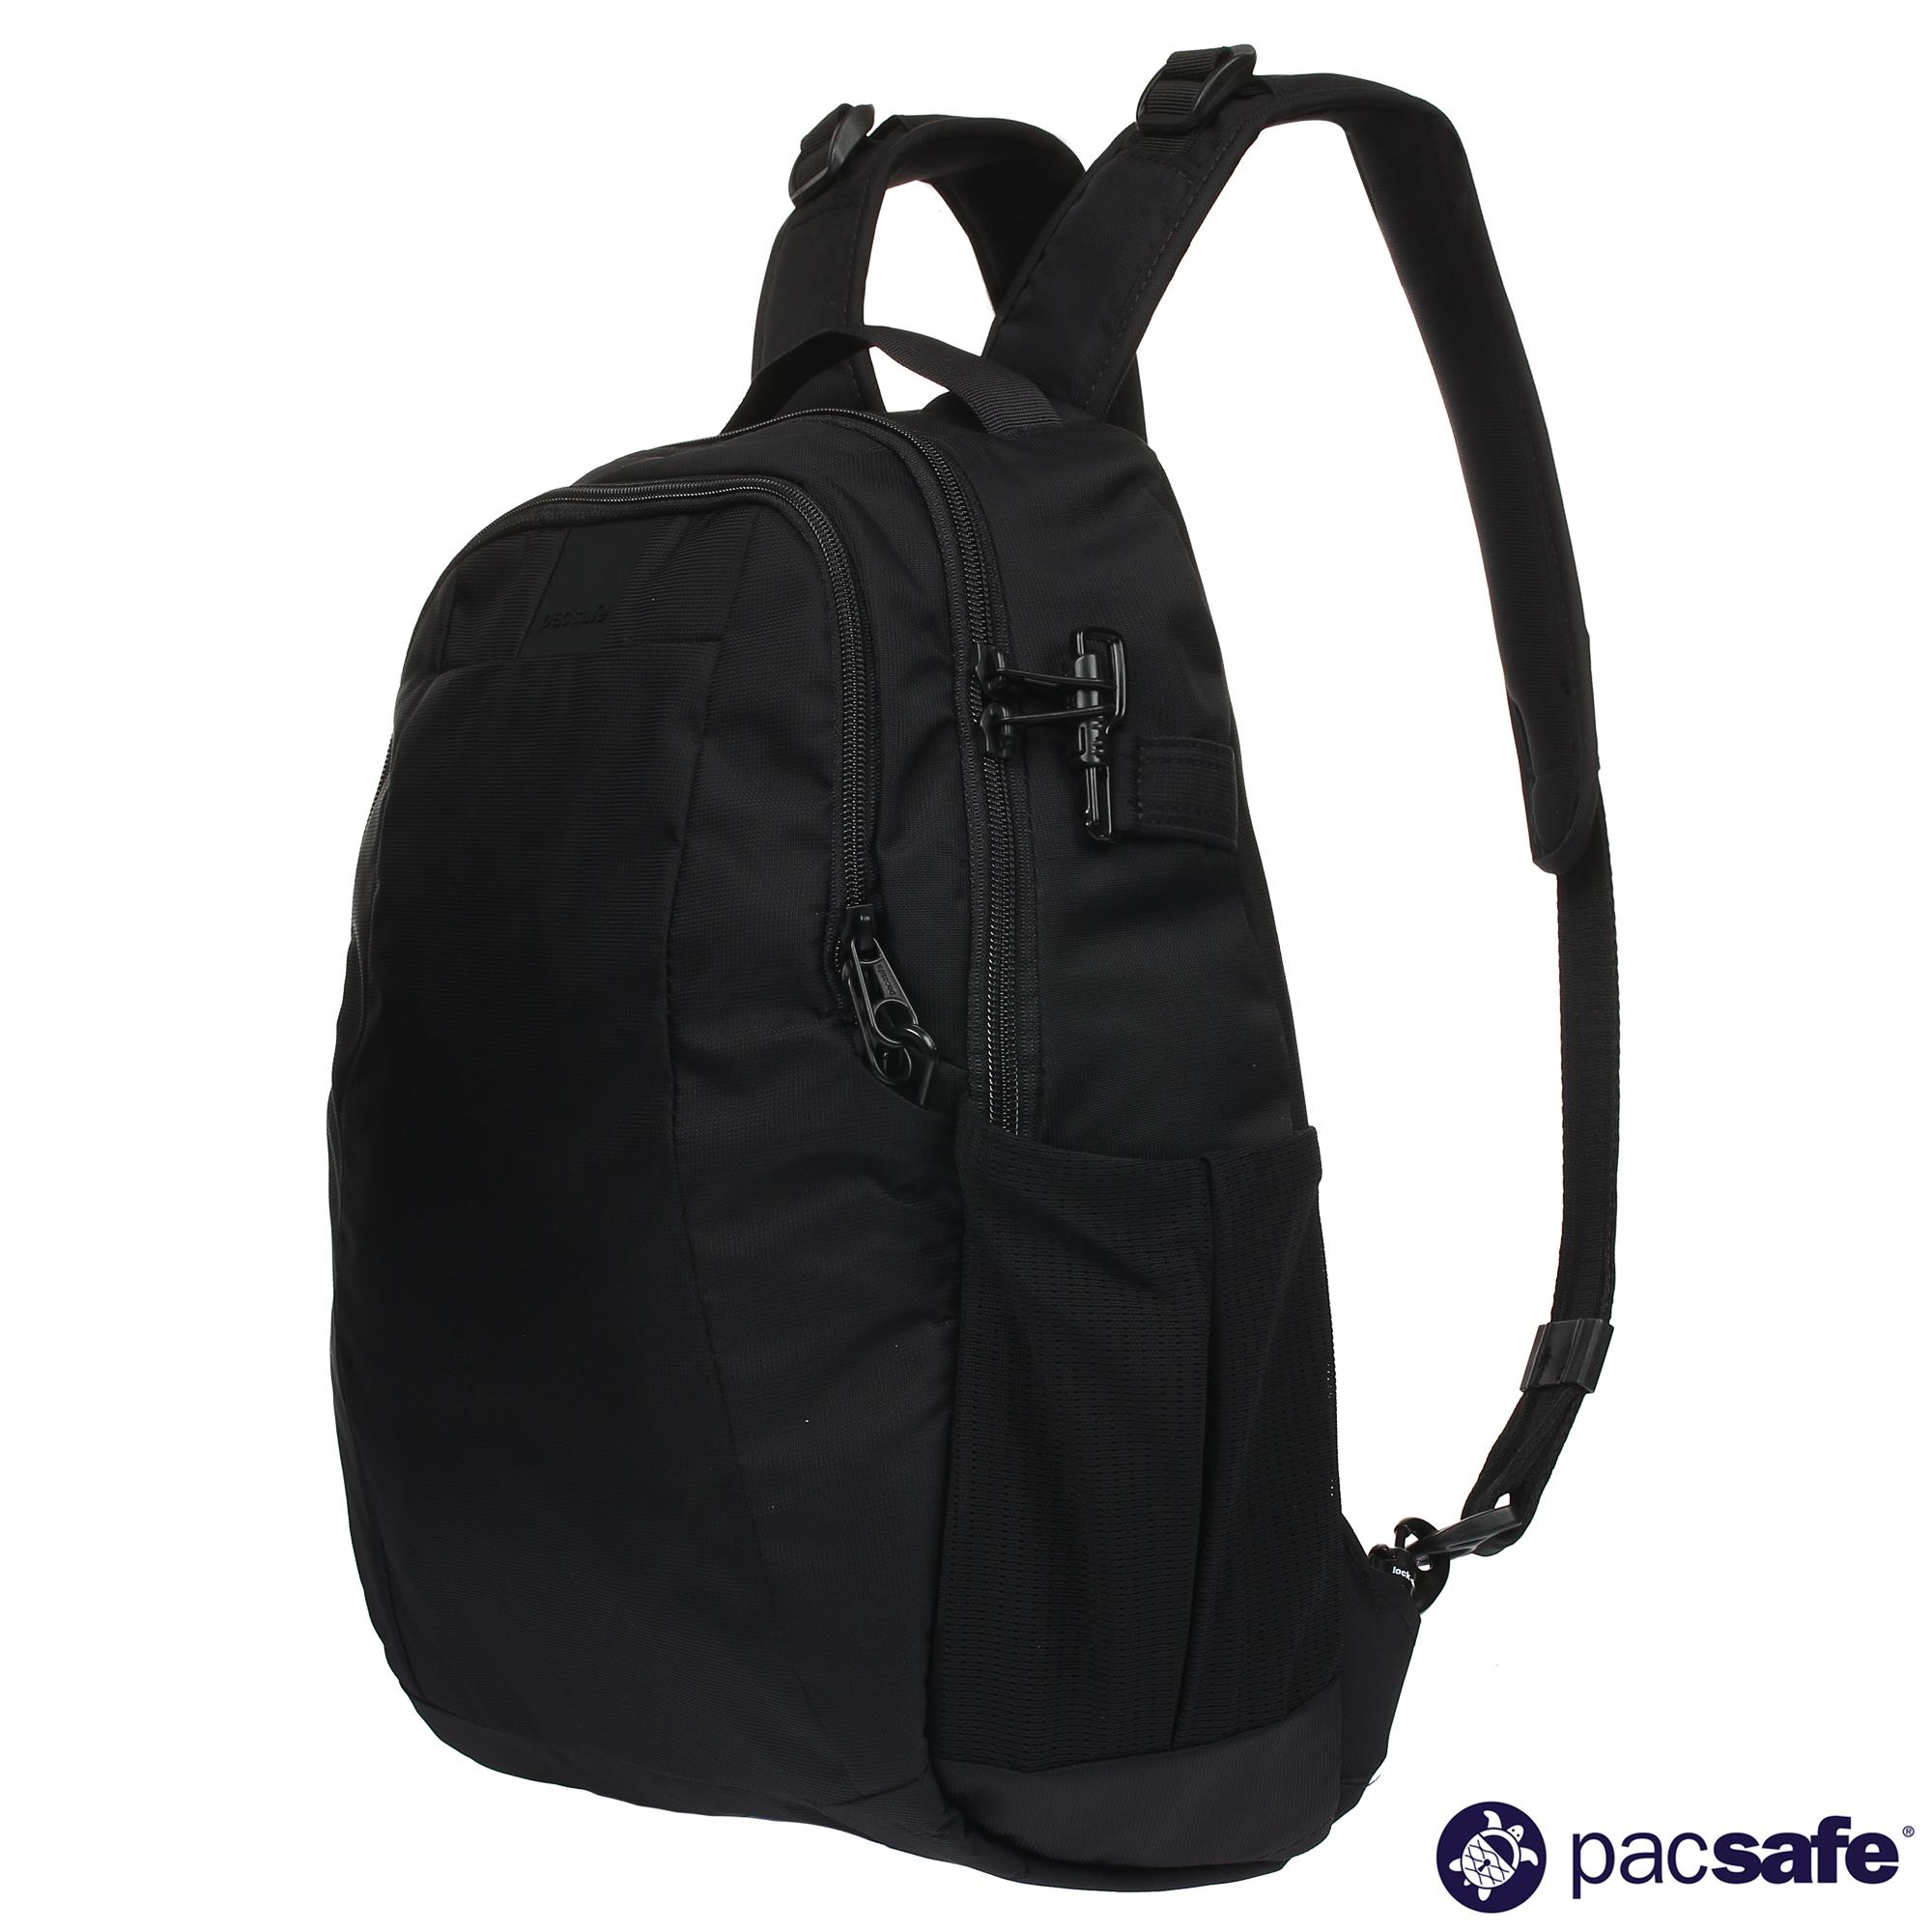 e22185d727ed Pacsafe Metrosafe LS350 15L Anti-Theft Backpack (Black)